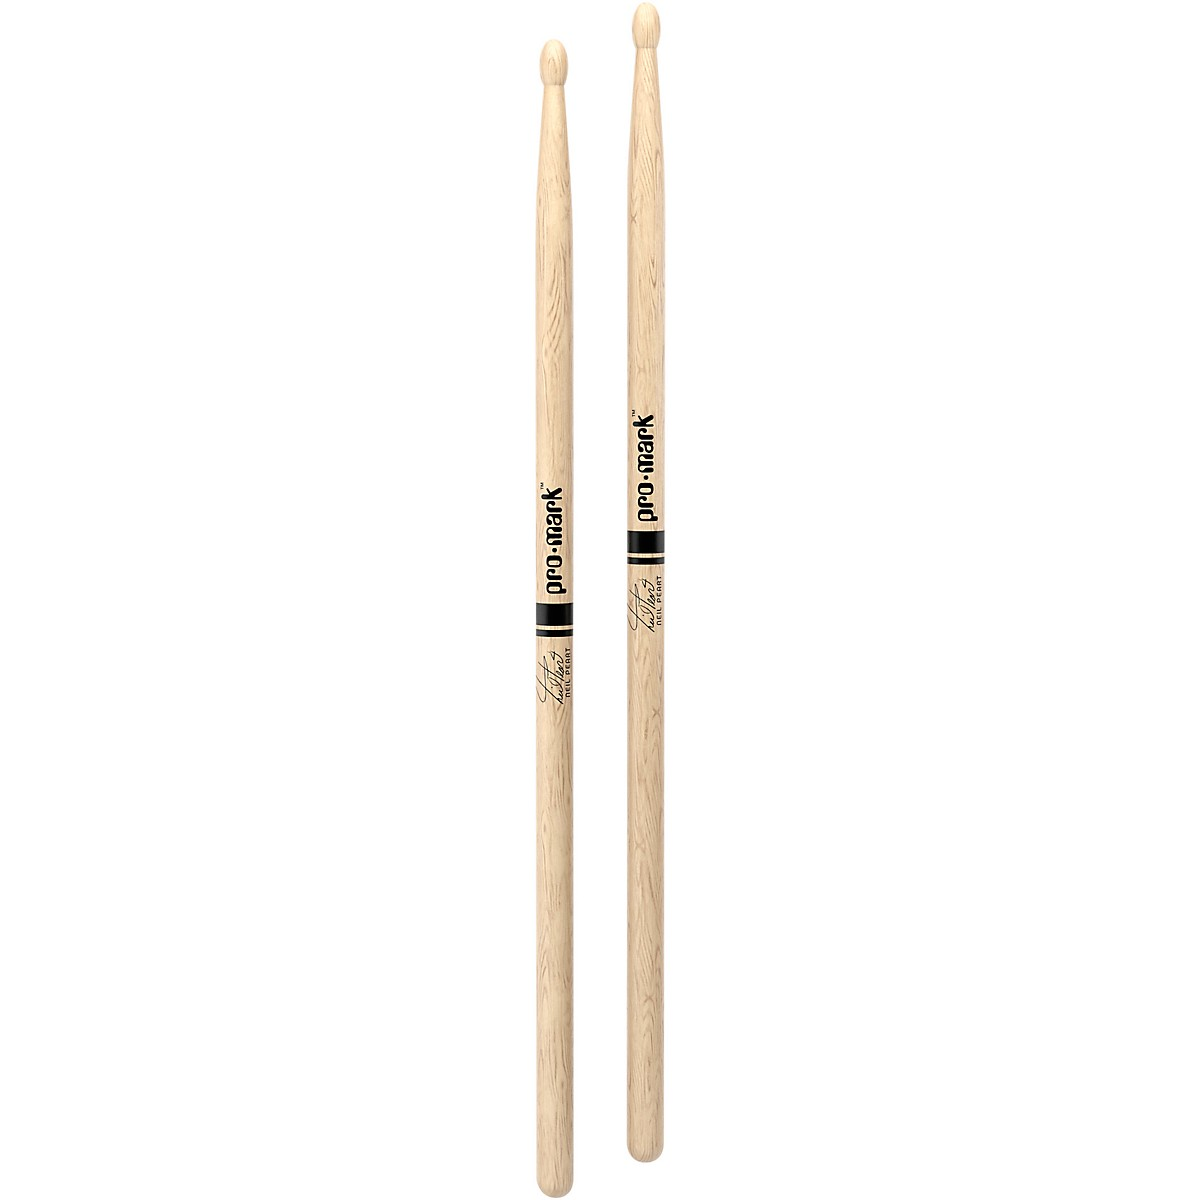 Promark Neil Peart Autograph Series Drumsticks